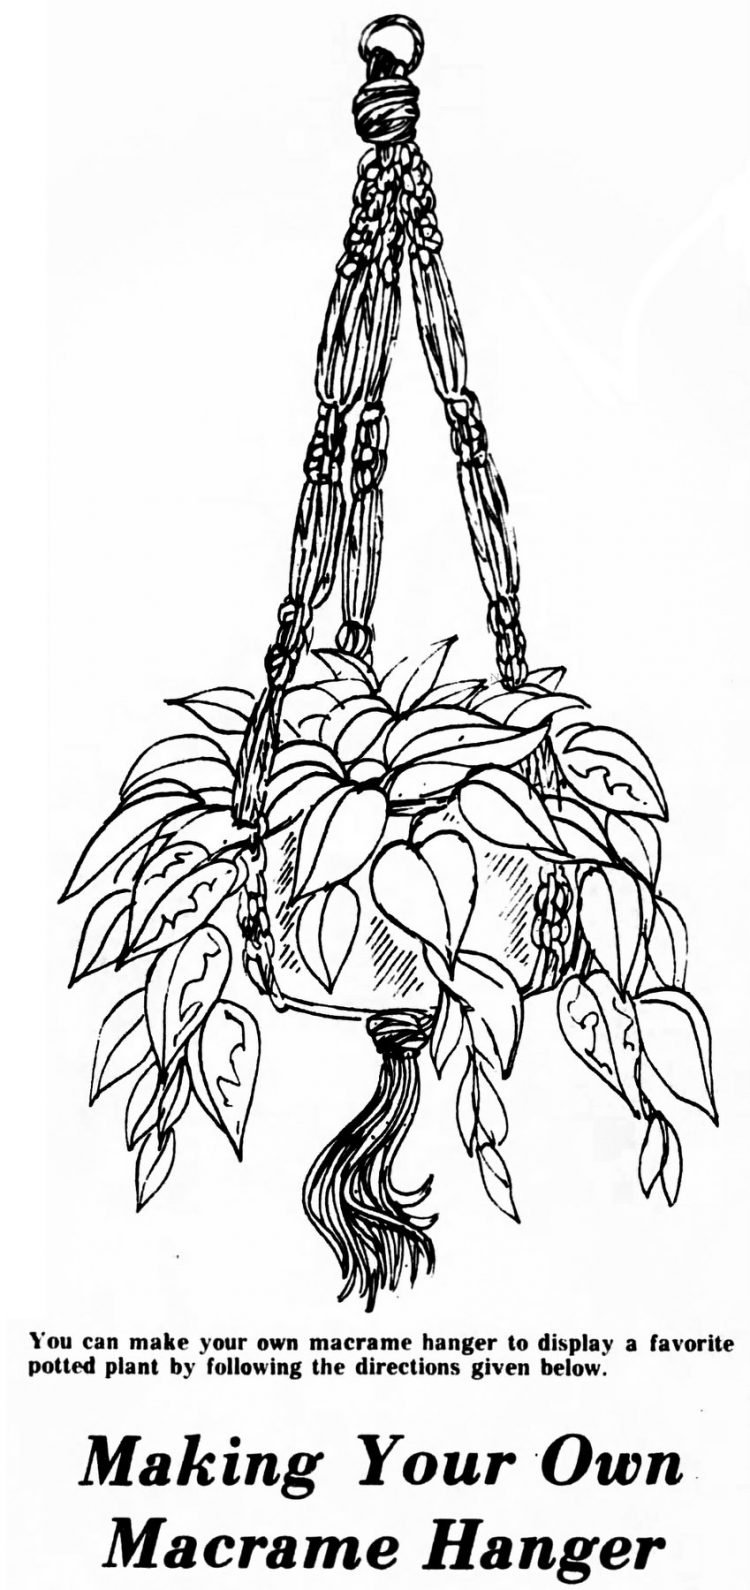 How to make a macrame plant hanger (1975)